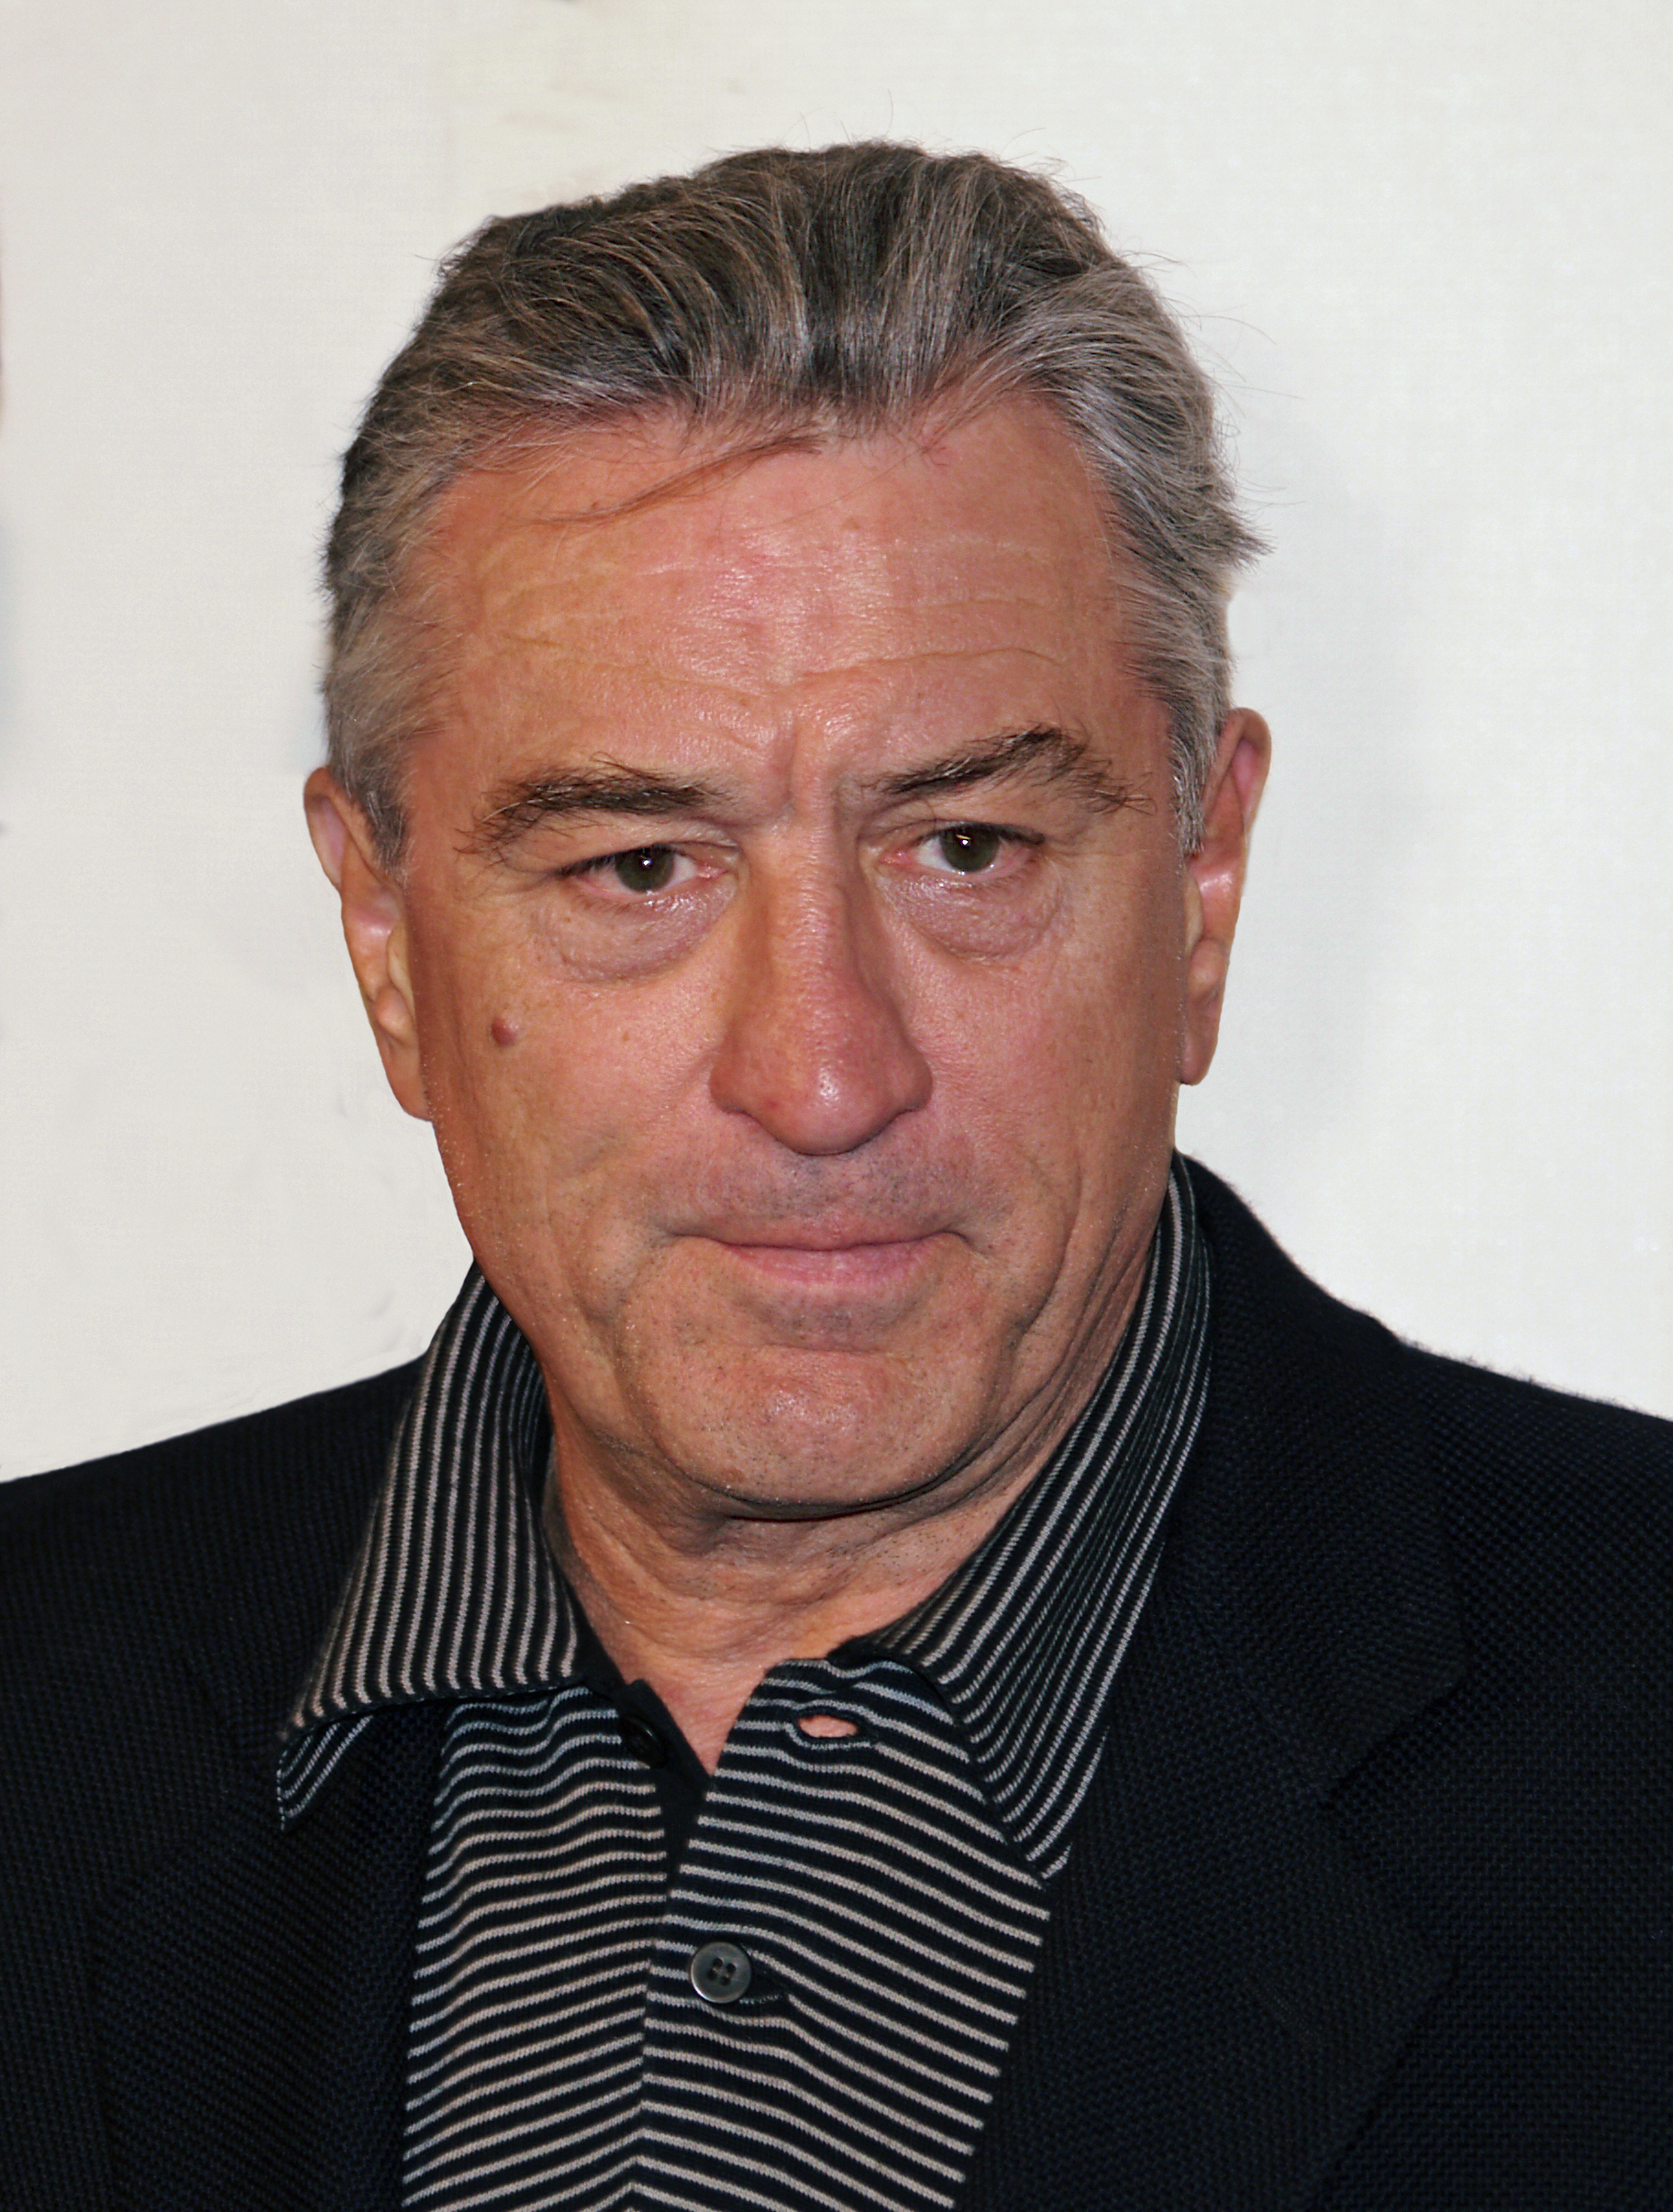 File:Robert De Niro 2 by David Shankbone.jpg - Wikimedia Commons